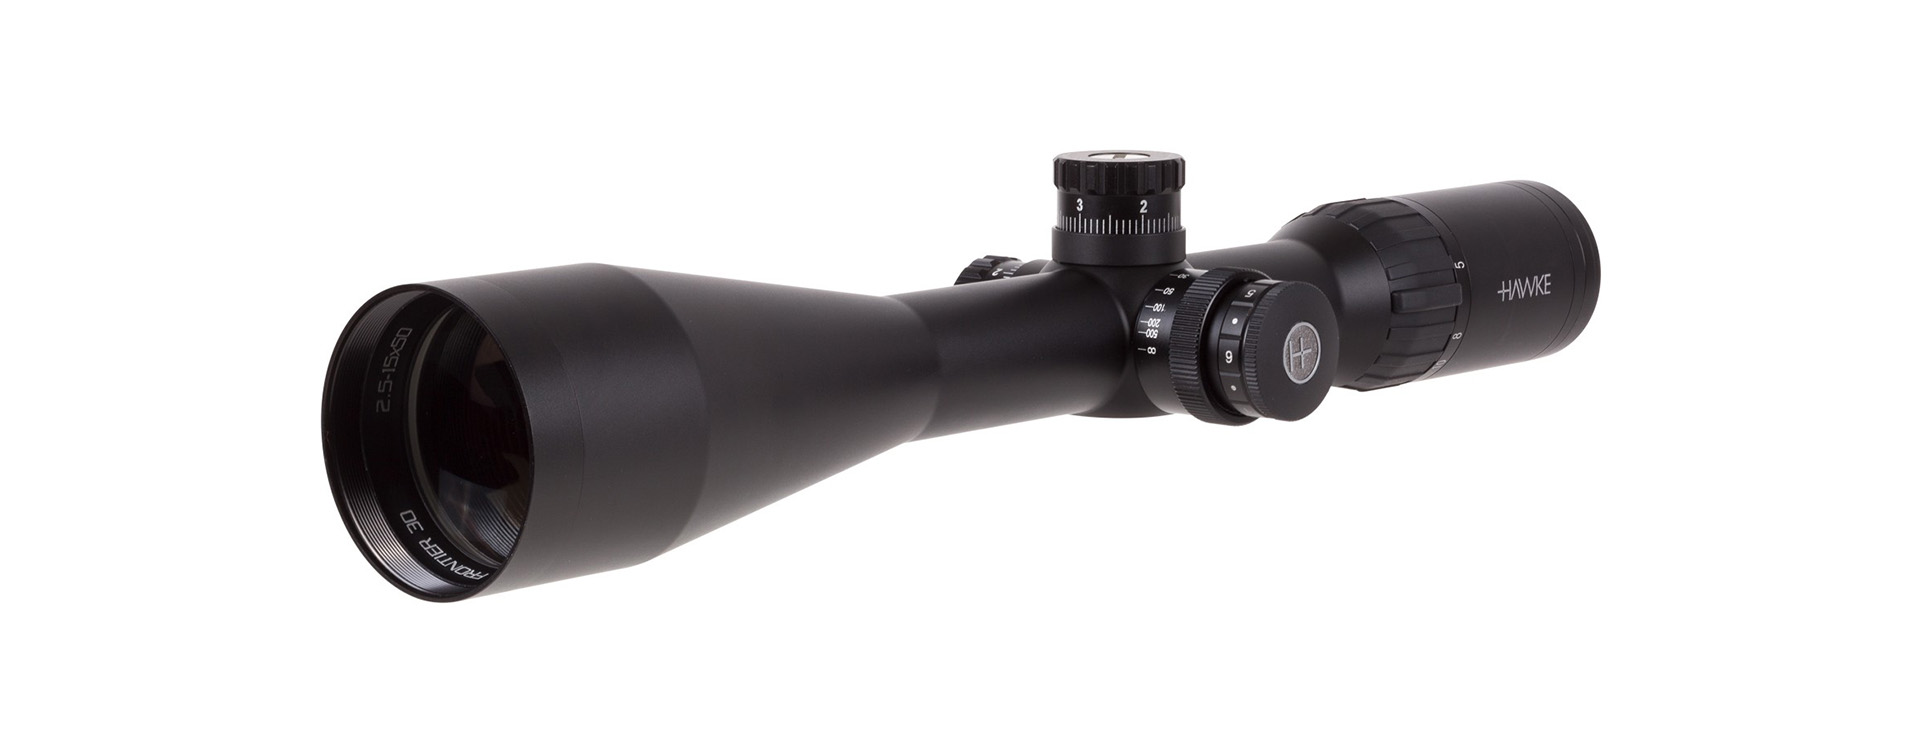 2.5-15x50 Frontier 30 SF Rifle Scope, Ill